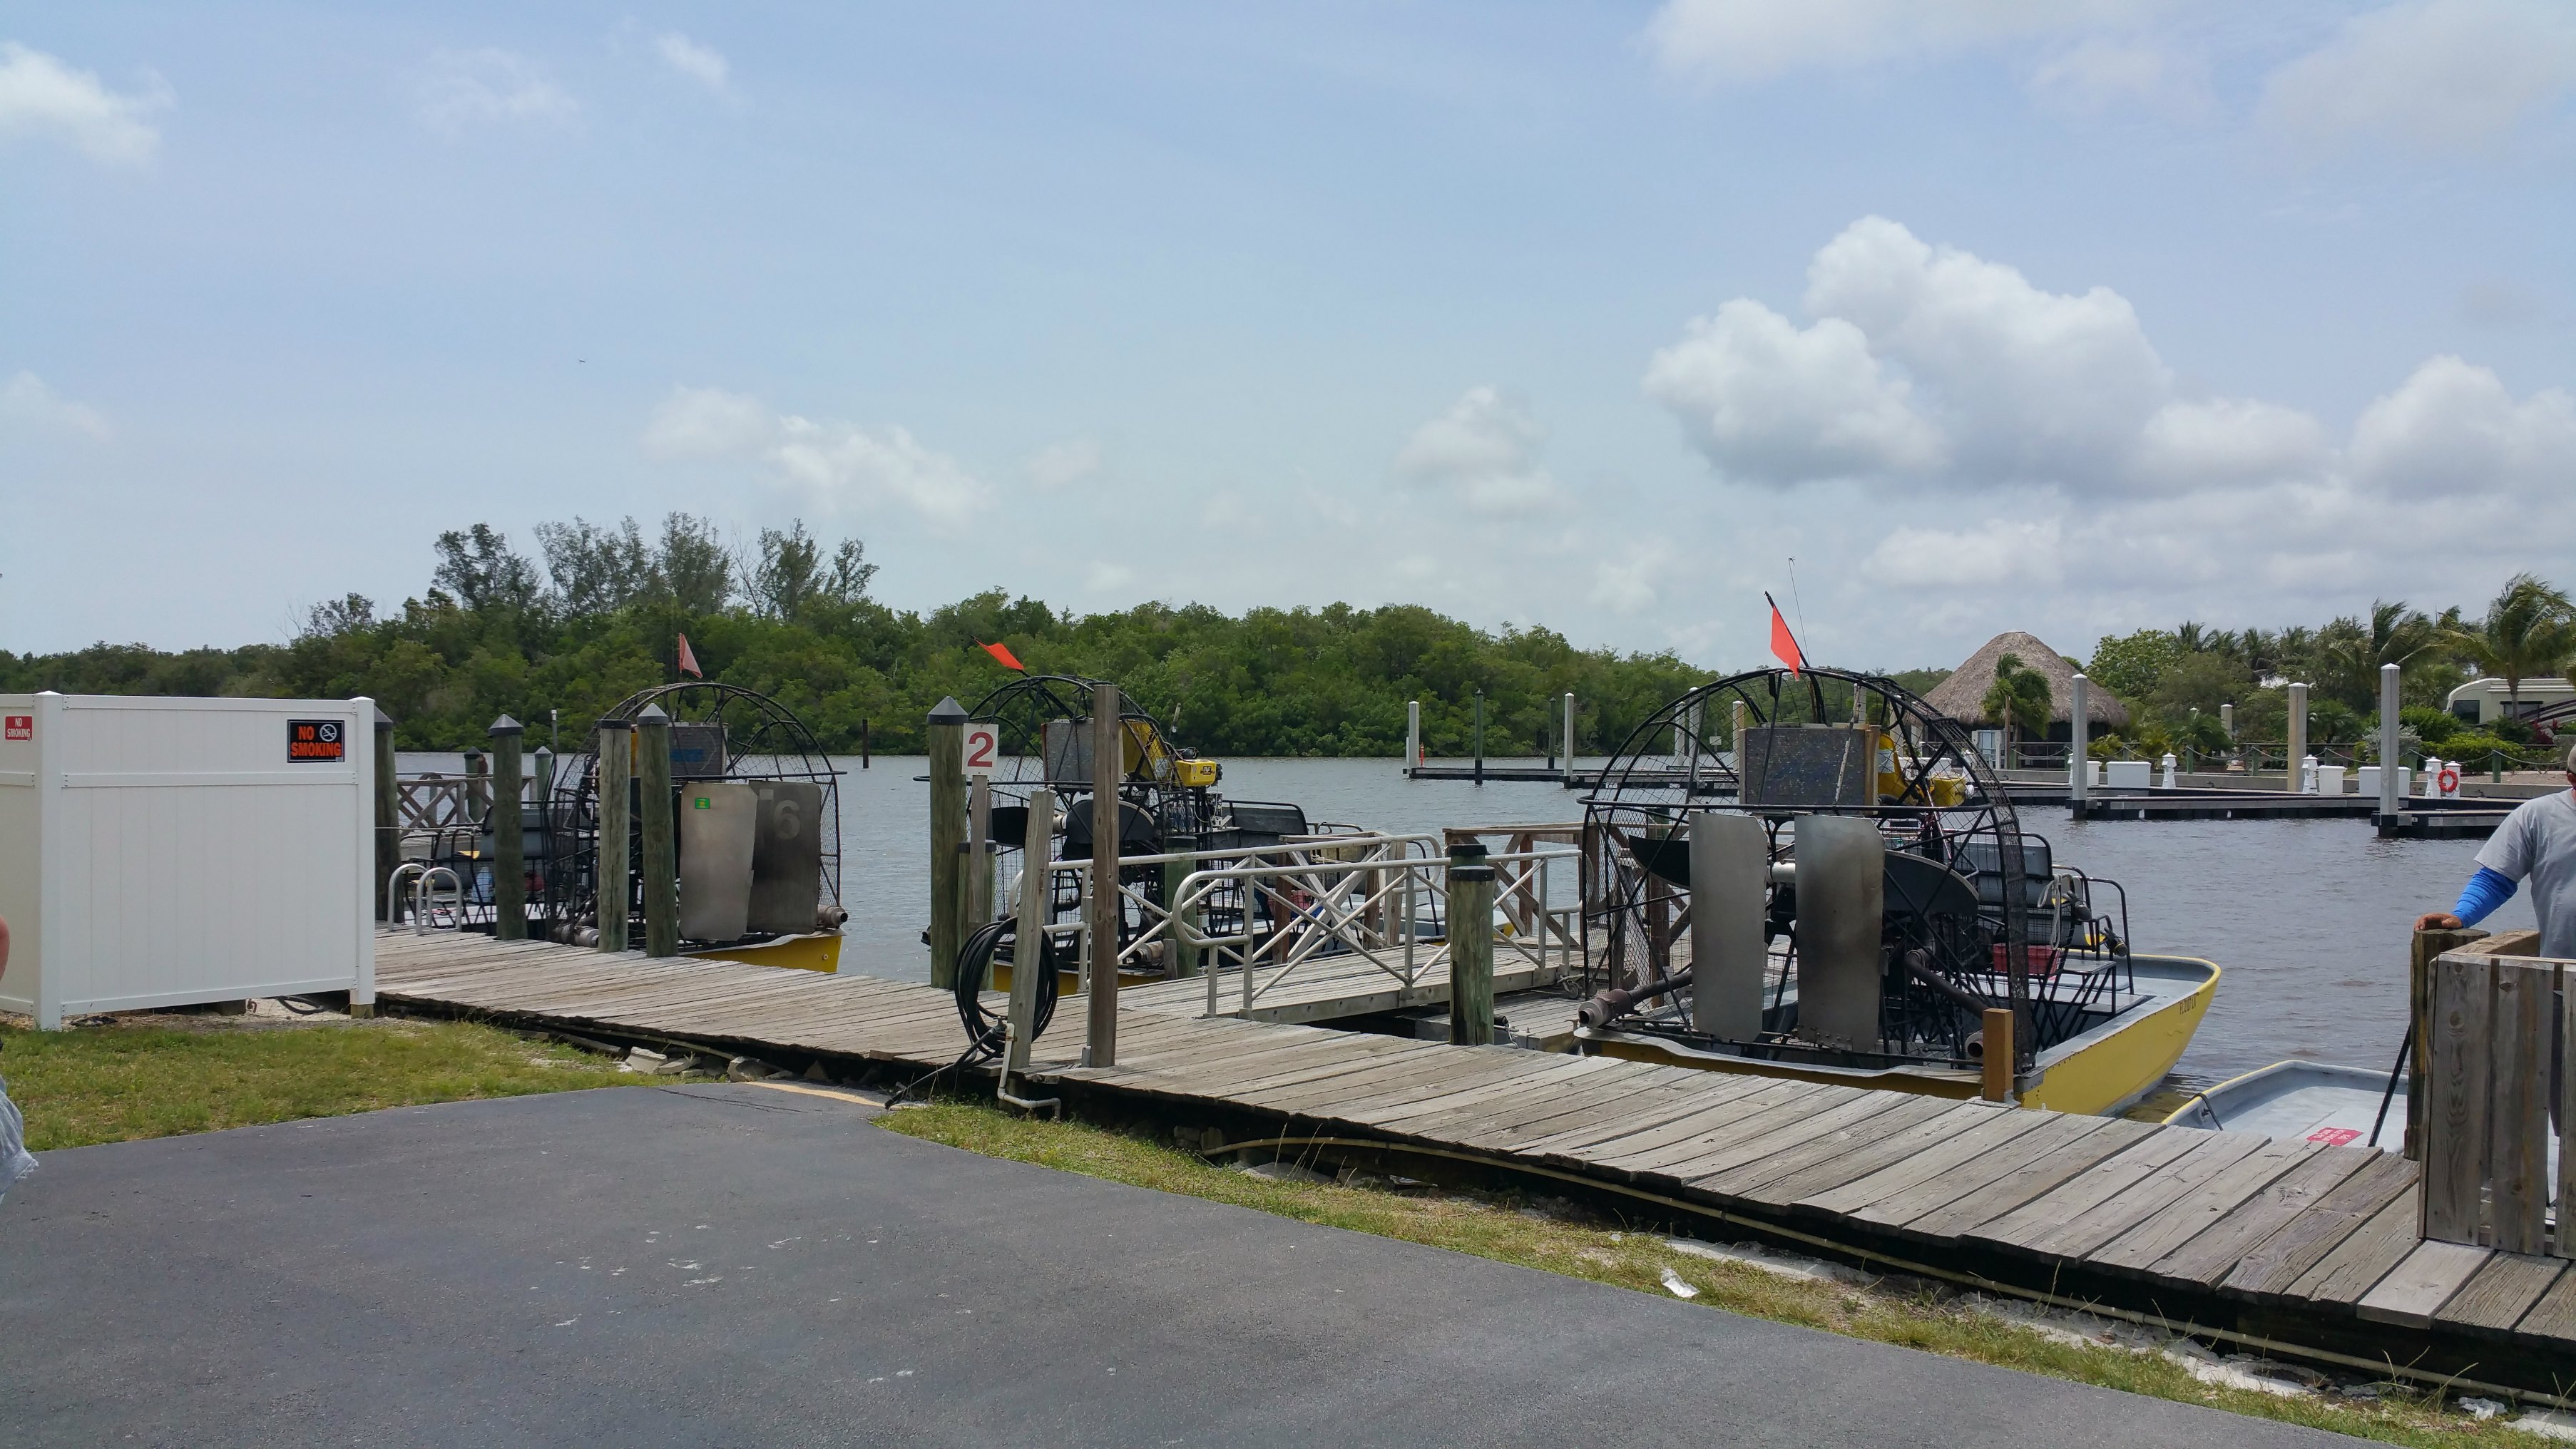 speedy's airboat review